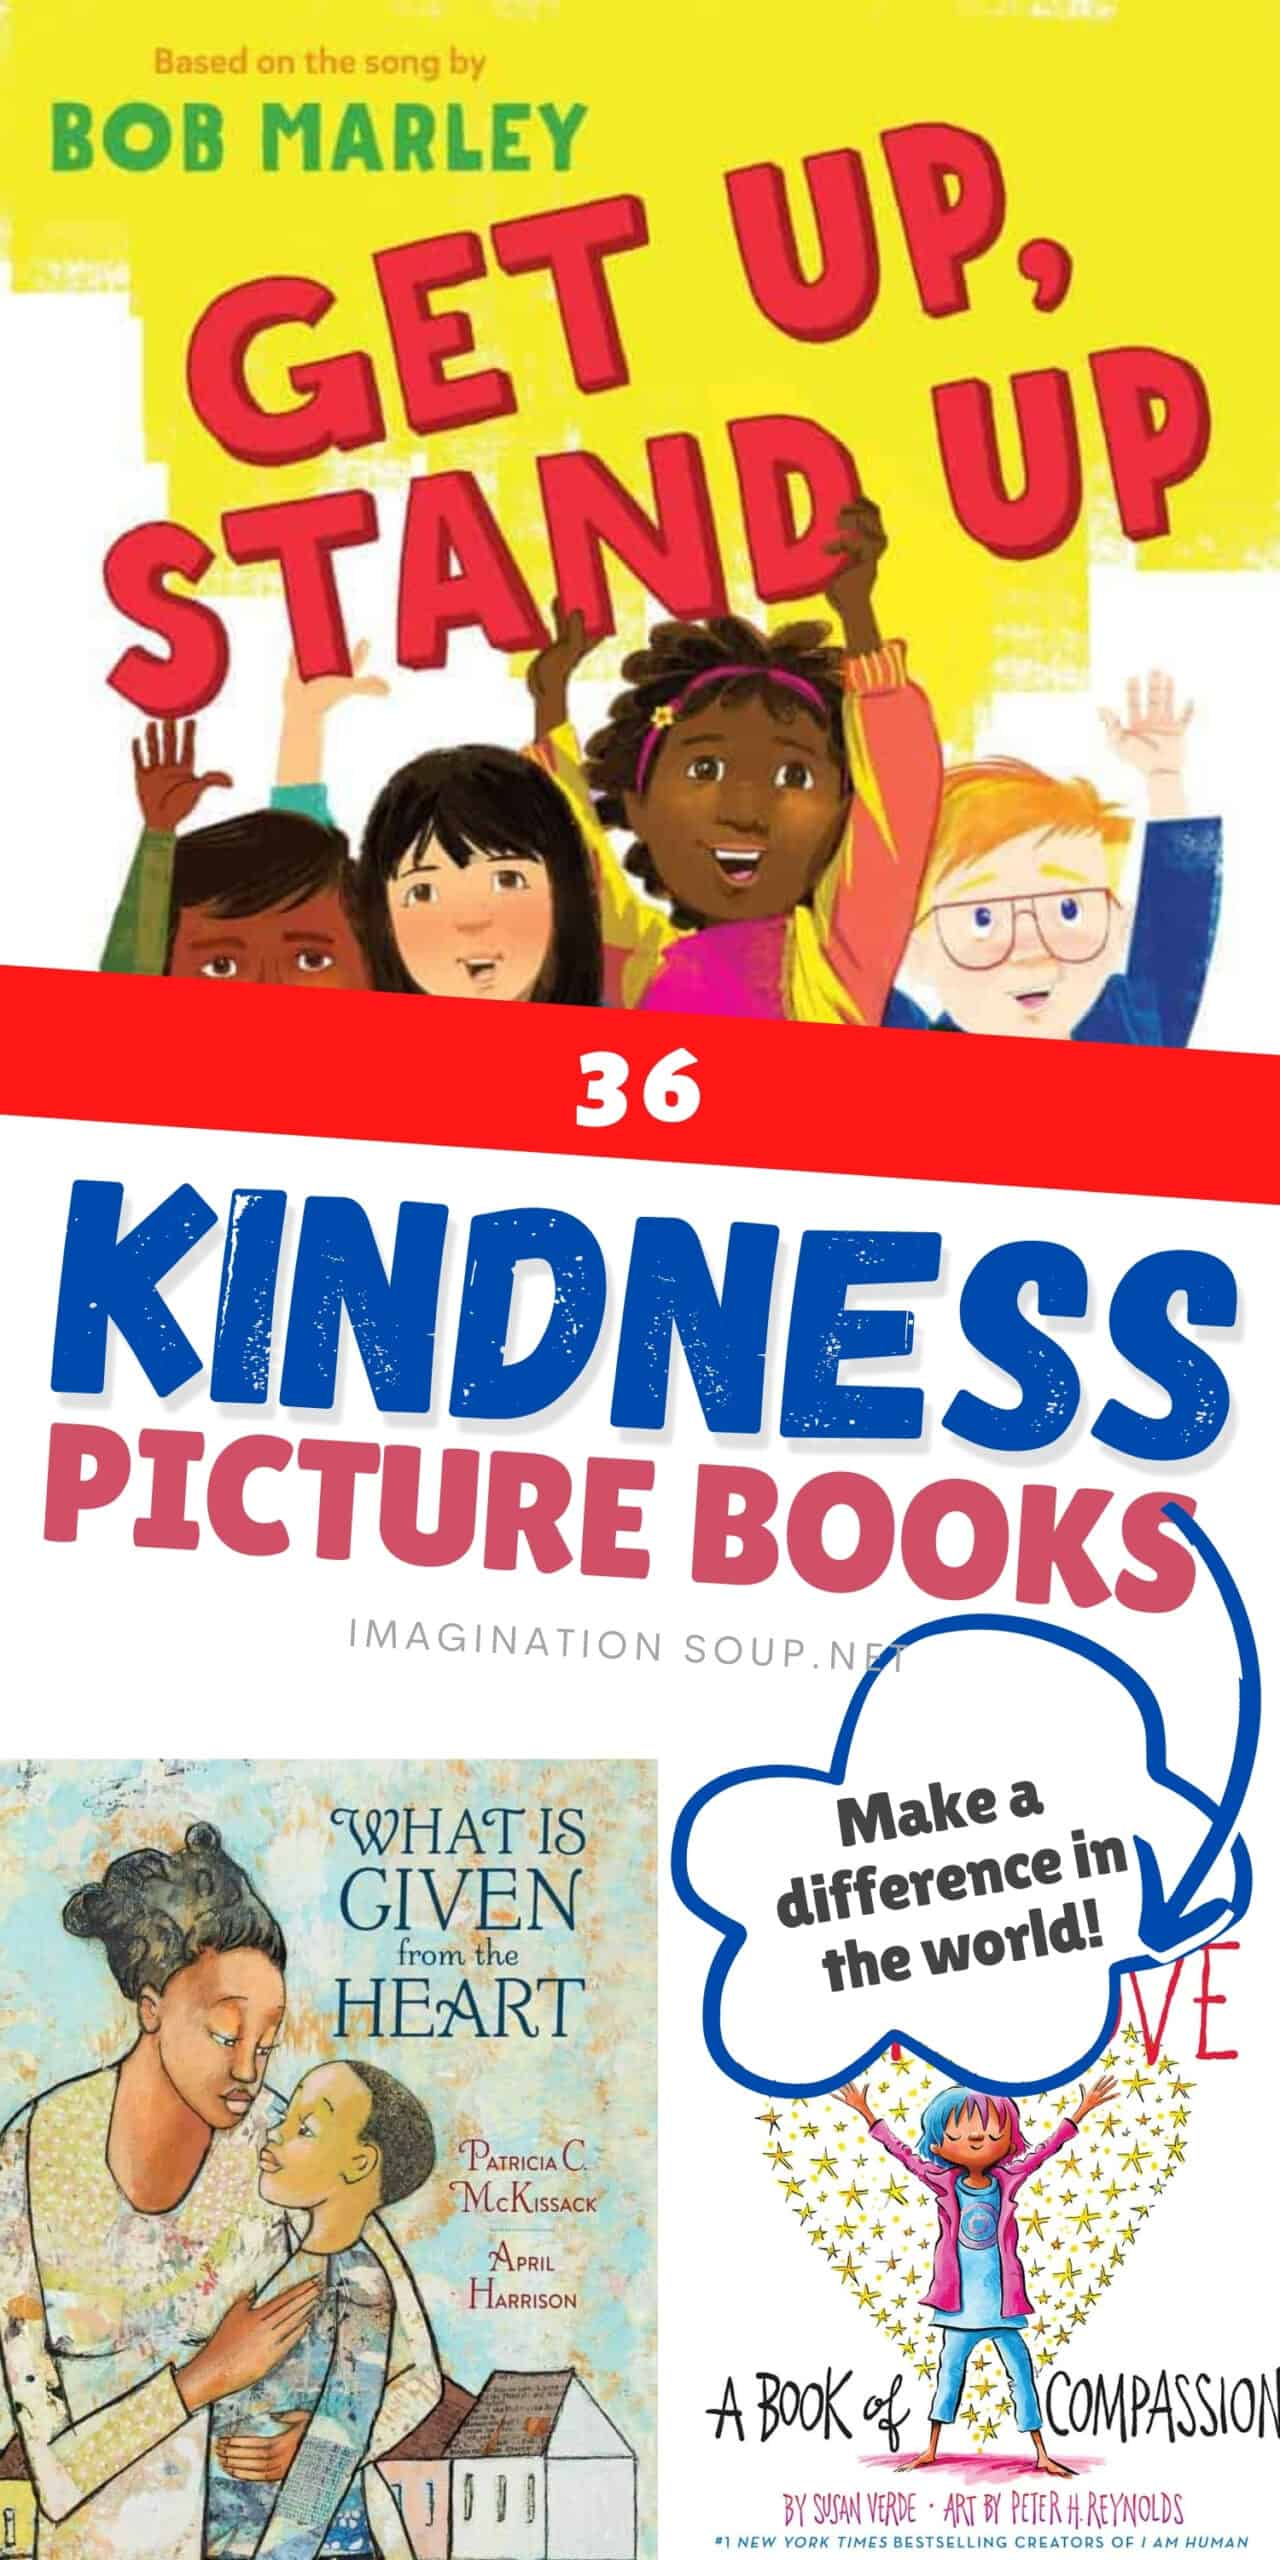 Kindness picture books for kids